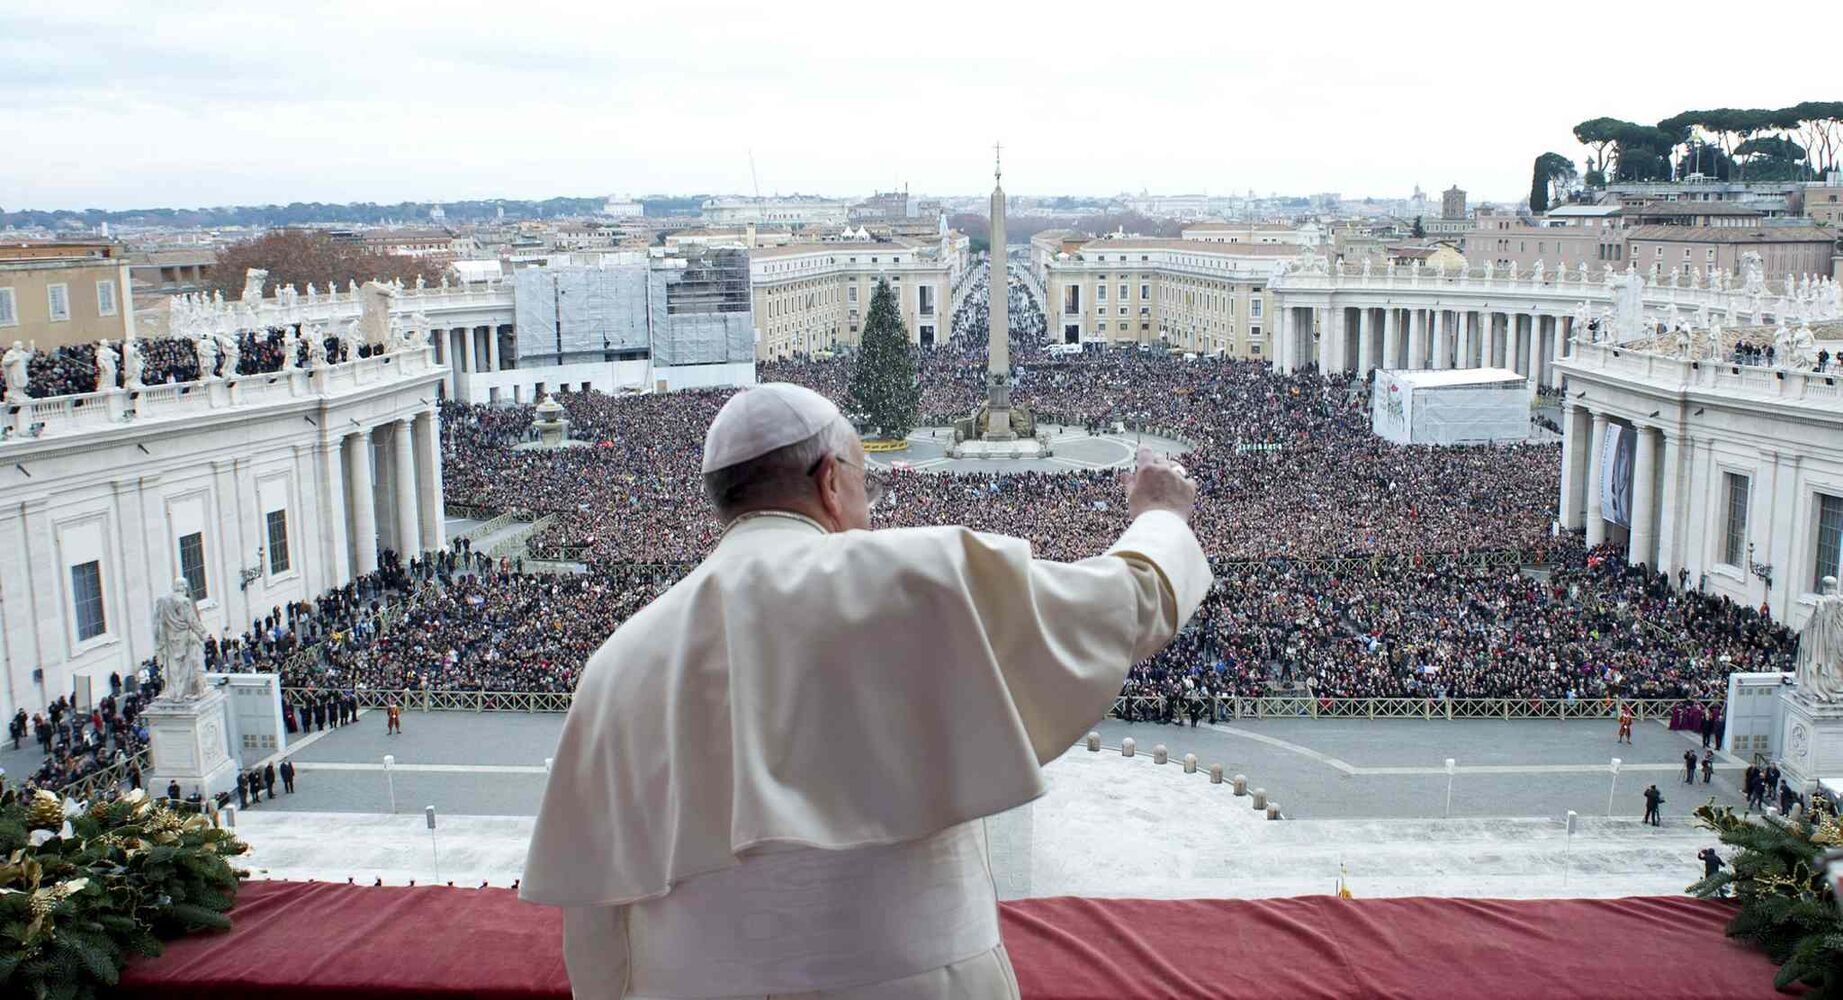 "In this picture provided by the Vatican newspaper L'Osservatore Romano, Pope Francis delivers his ""Urbi et Orbi"" (to the City and to the World) message from the central balcony of St. Peter's Basilica at the Vatican, Wednesday, Dec. 25, 2013. Pope Francis on Christmas day is wishing for a better world, with peace for the land of Jesus' birth, for Syria and Africa as well as for the dignity of migrants and refugees fleeing misery and conflict. Francis spoke from the central balcony of St. Peter's Basilica Wednesday to tens of thousands of tourists, pilgrims and Romans in the square below. He said he was joining in the song of Christmas angels with all those hoping ""for a better world,"" and with those who ""care for others, humbly.""  (L'Osservatore Romano)"